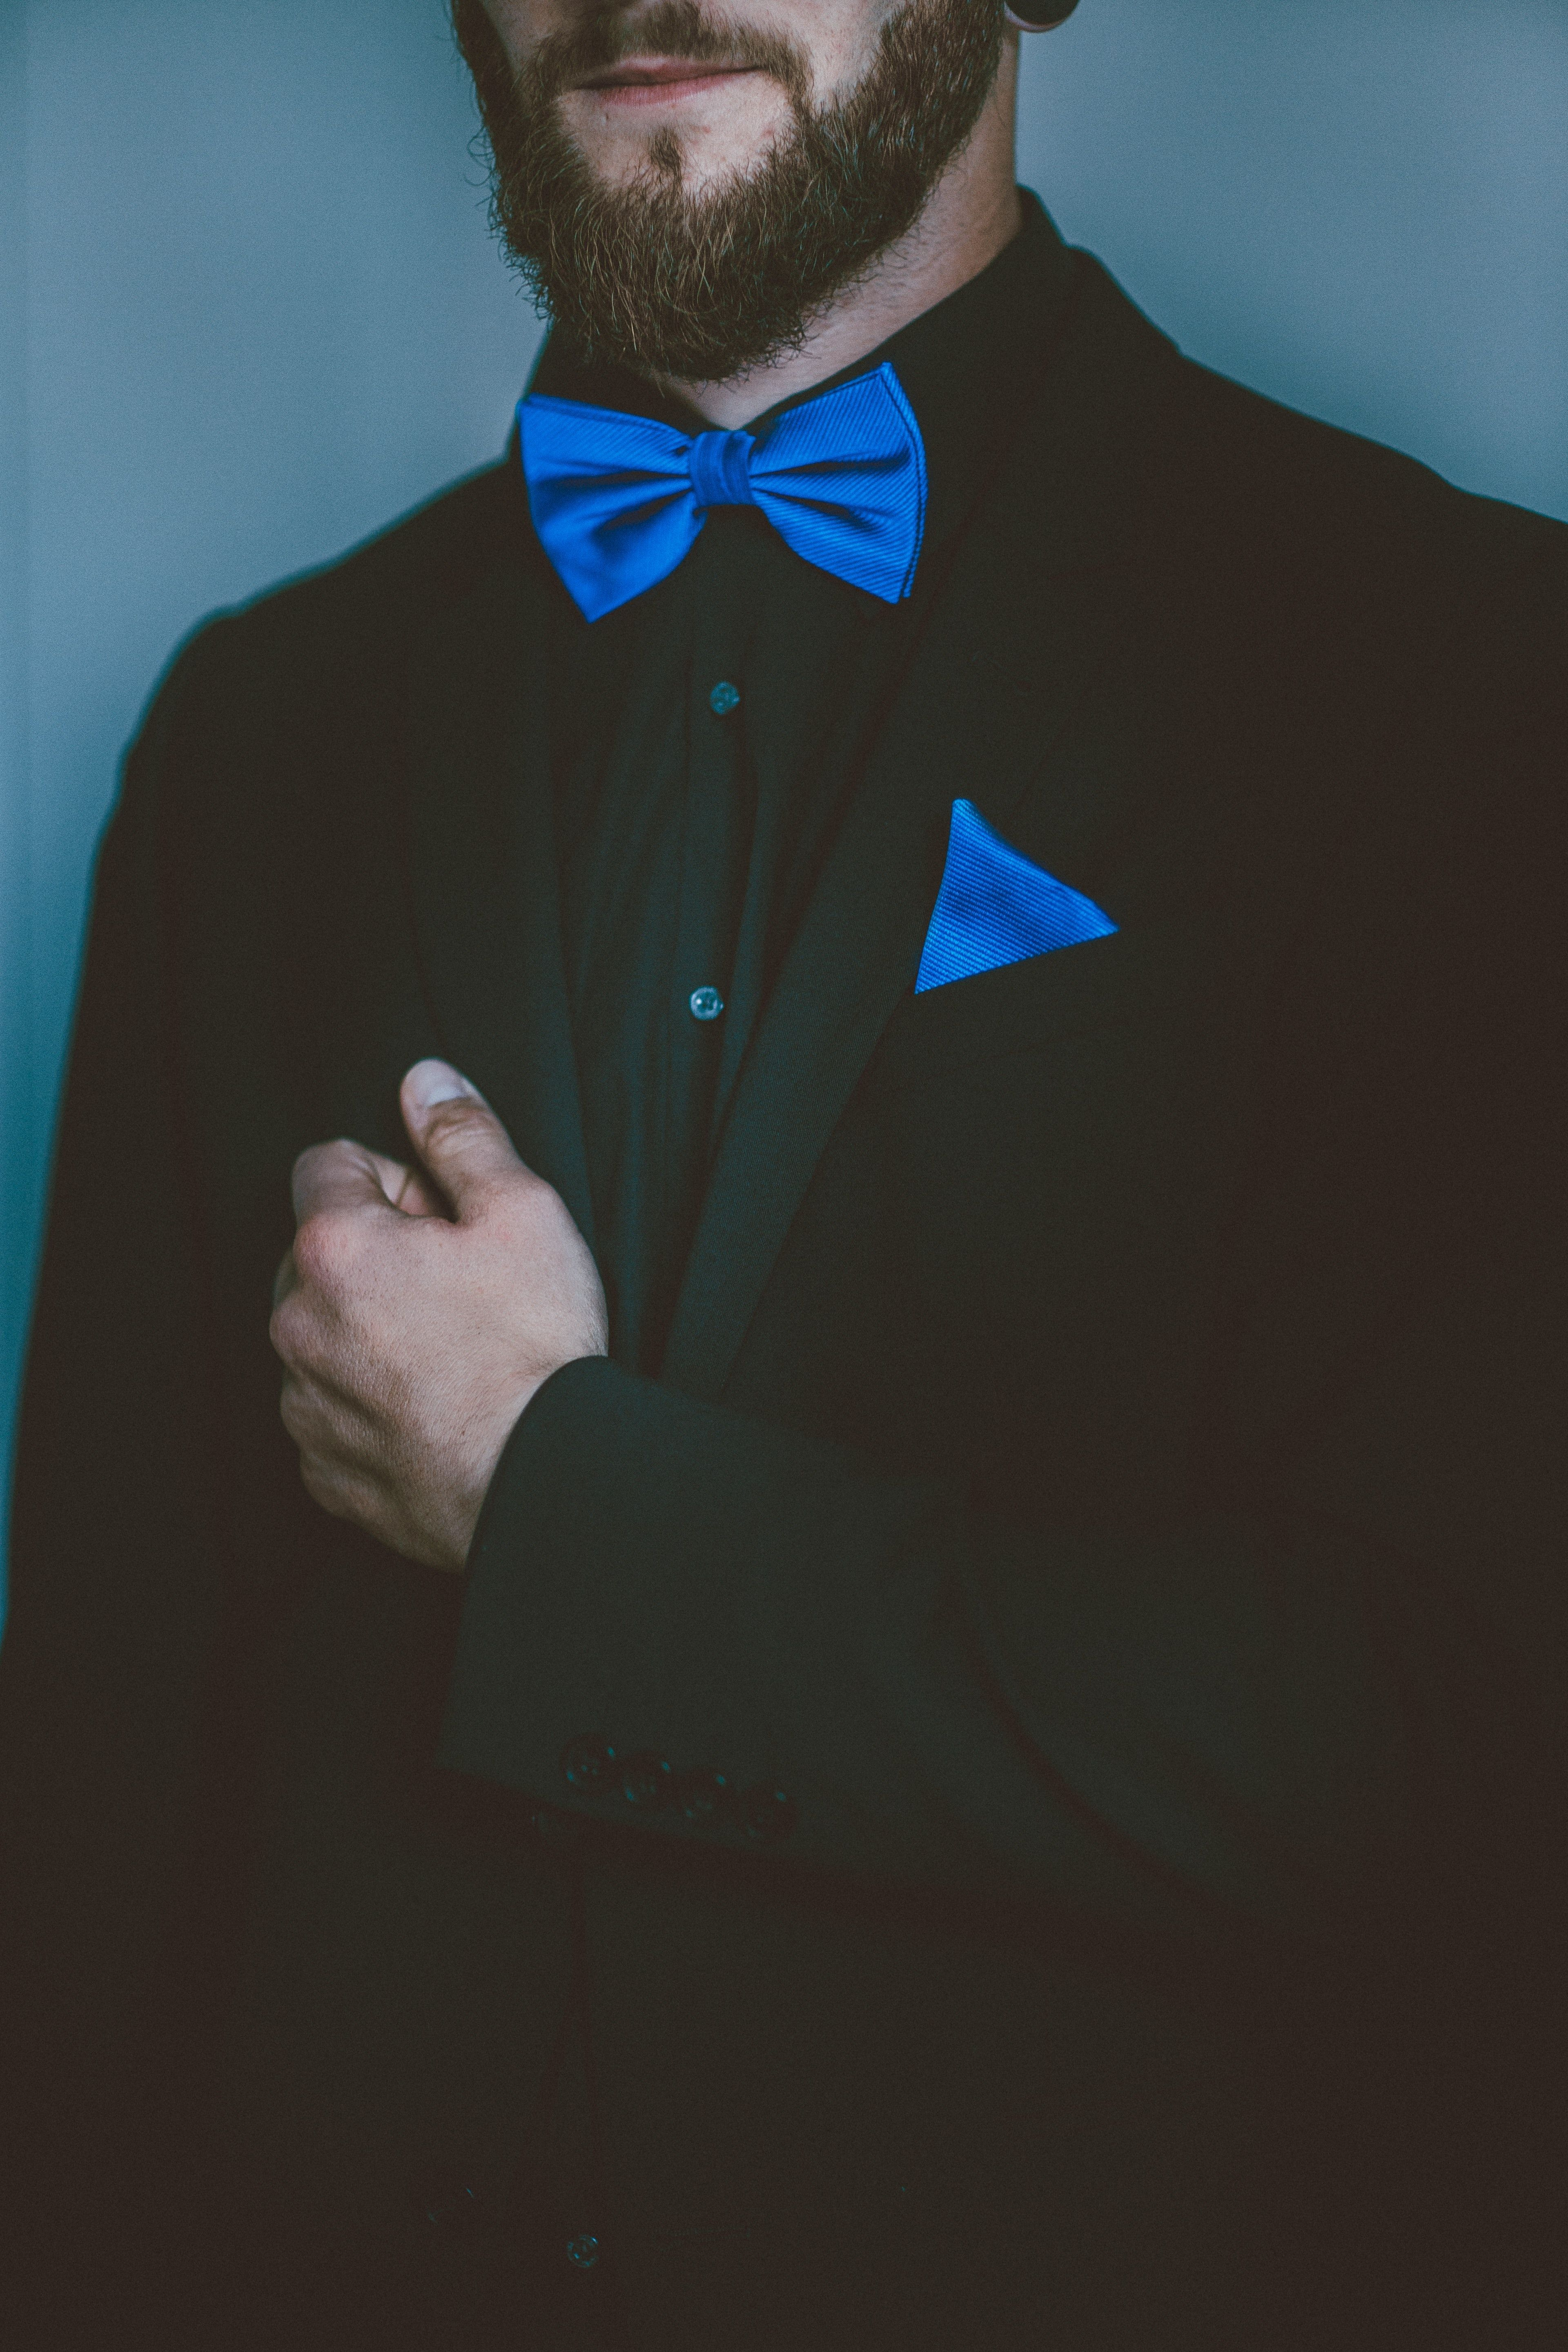 Tuxedos great mens fashion black tie event suit and tie